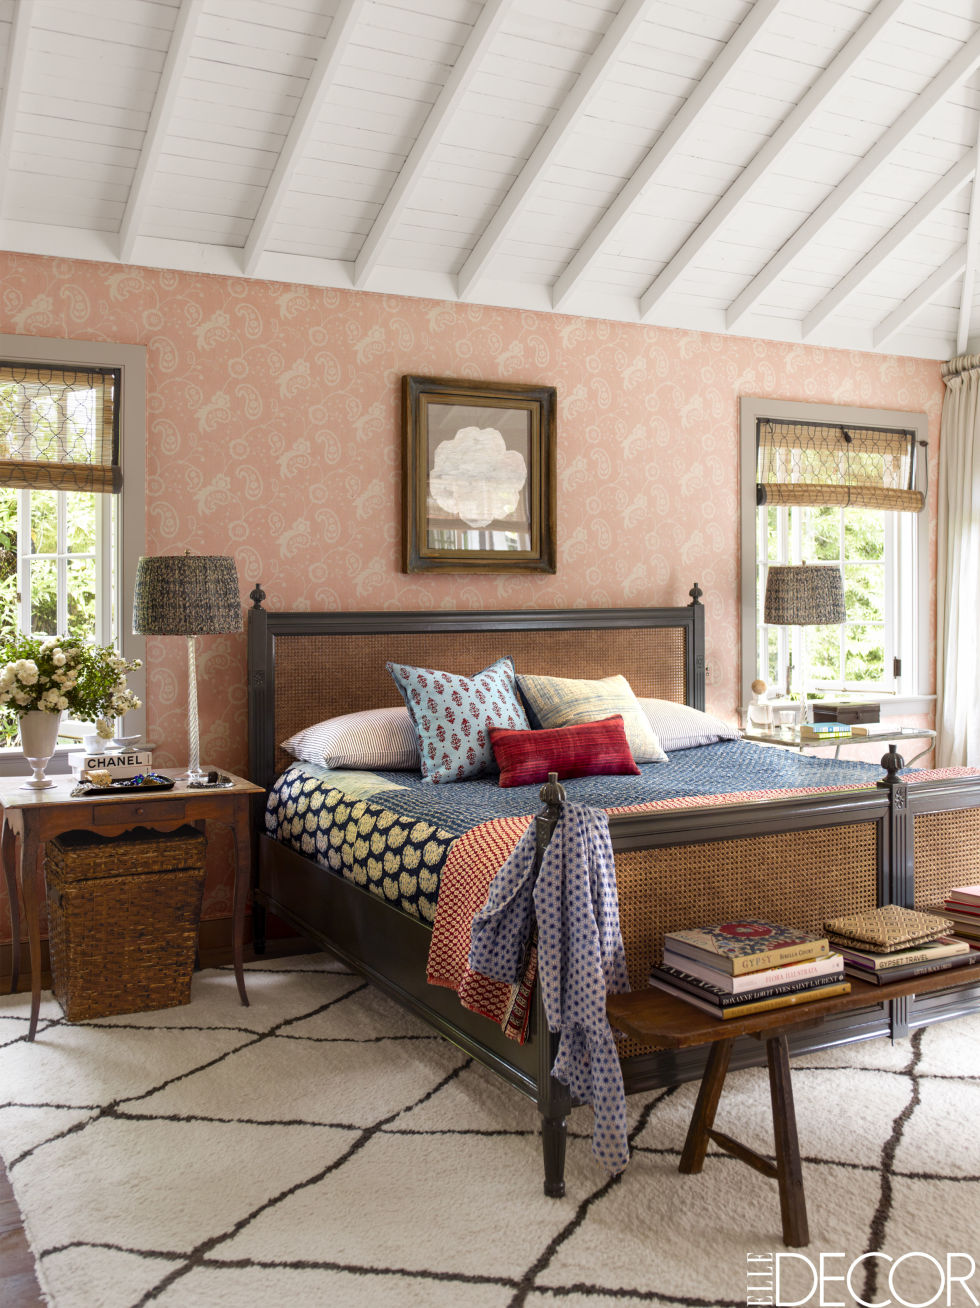 Why wallpaper when you can upholster your bedroom walls with  Raoul textiles ?